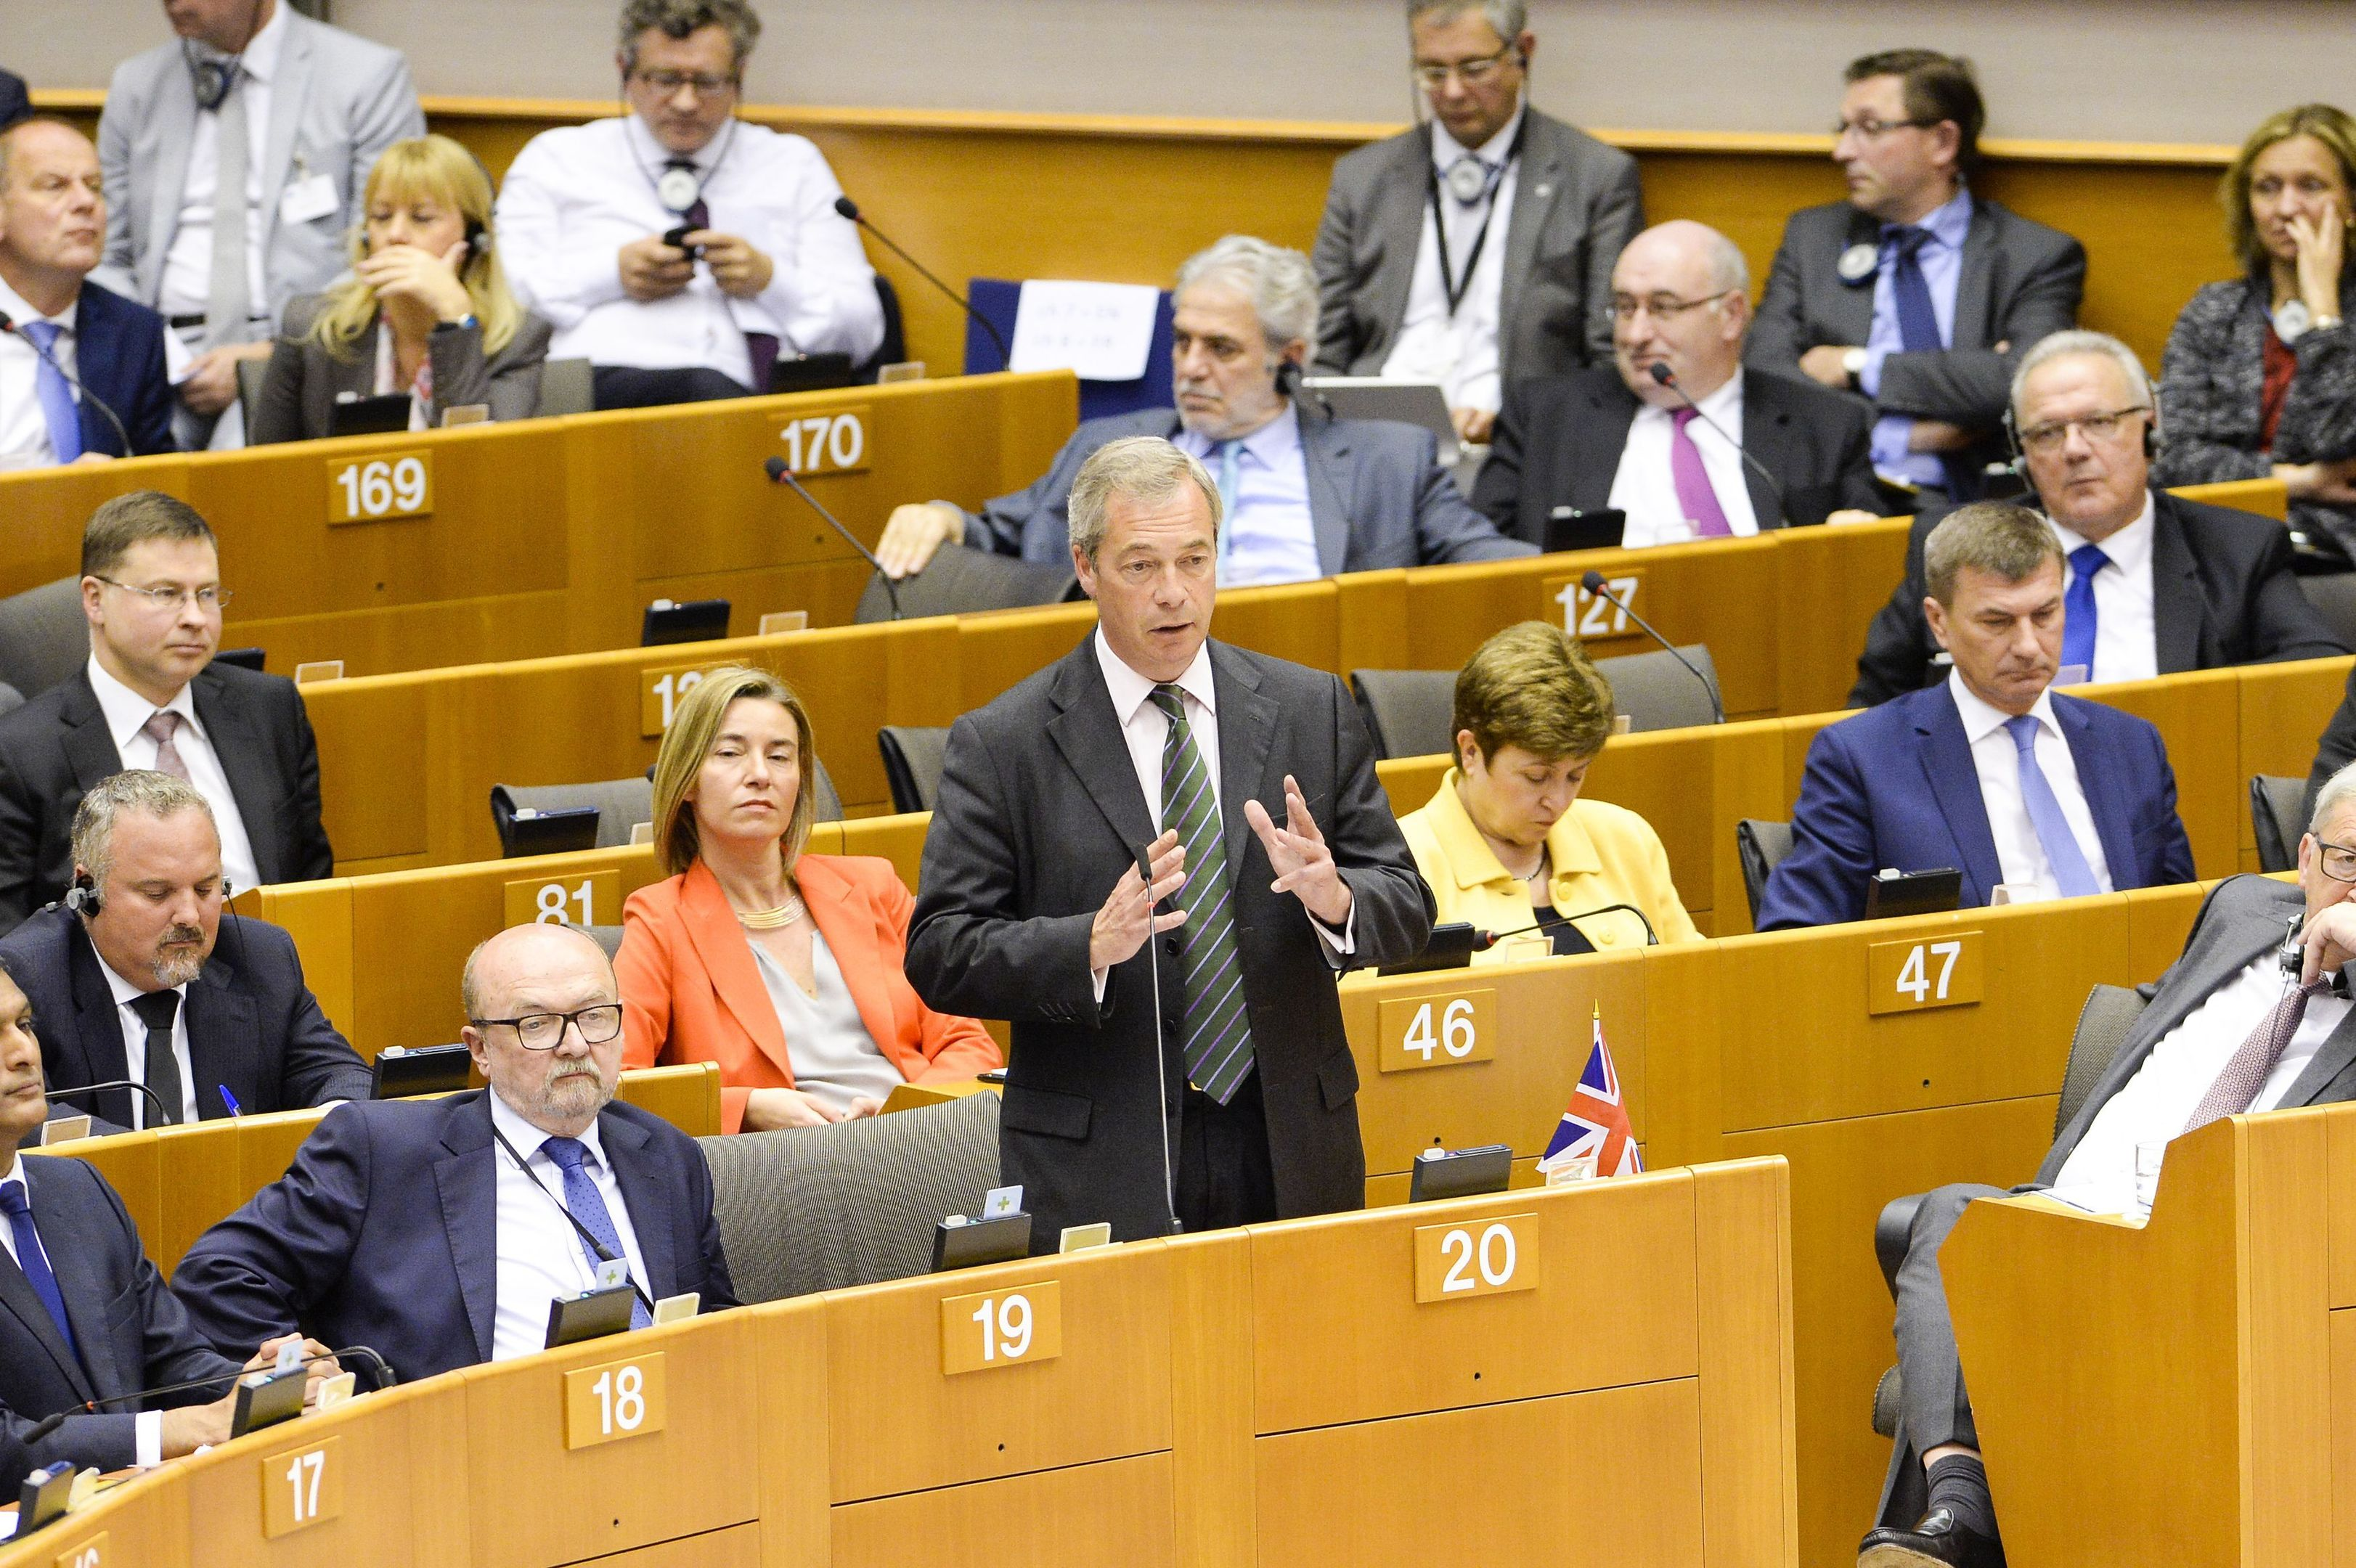 Nigel Farage speaking at the European Parliament in Brussels during an emergency session to discuss the fallout from the Brexit vote.